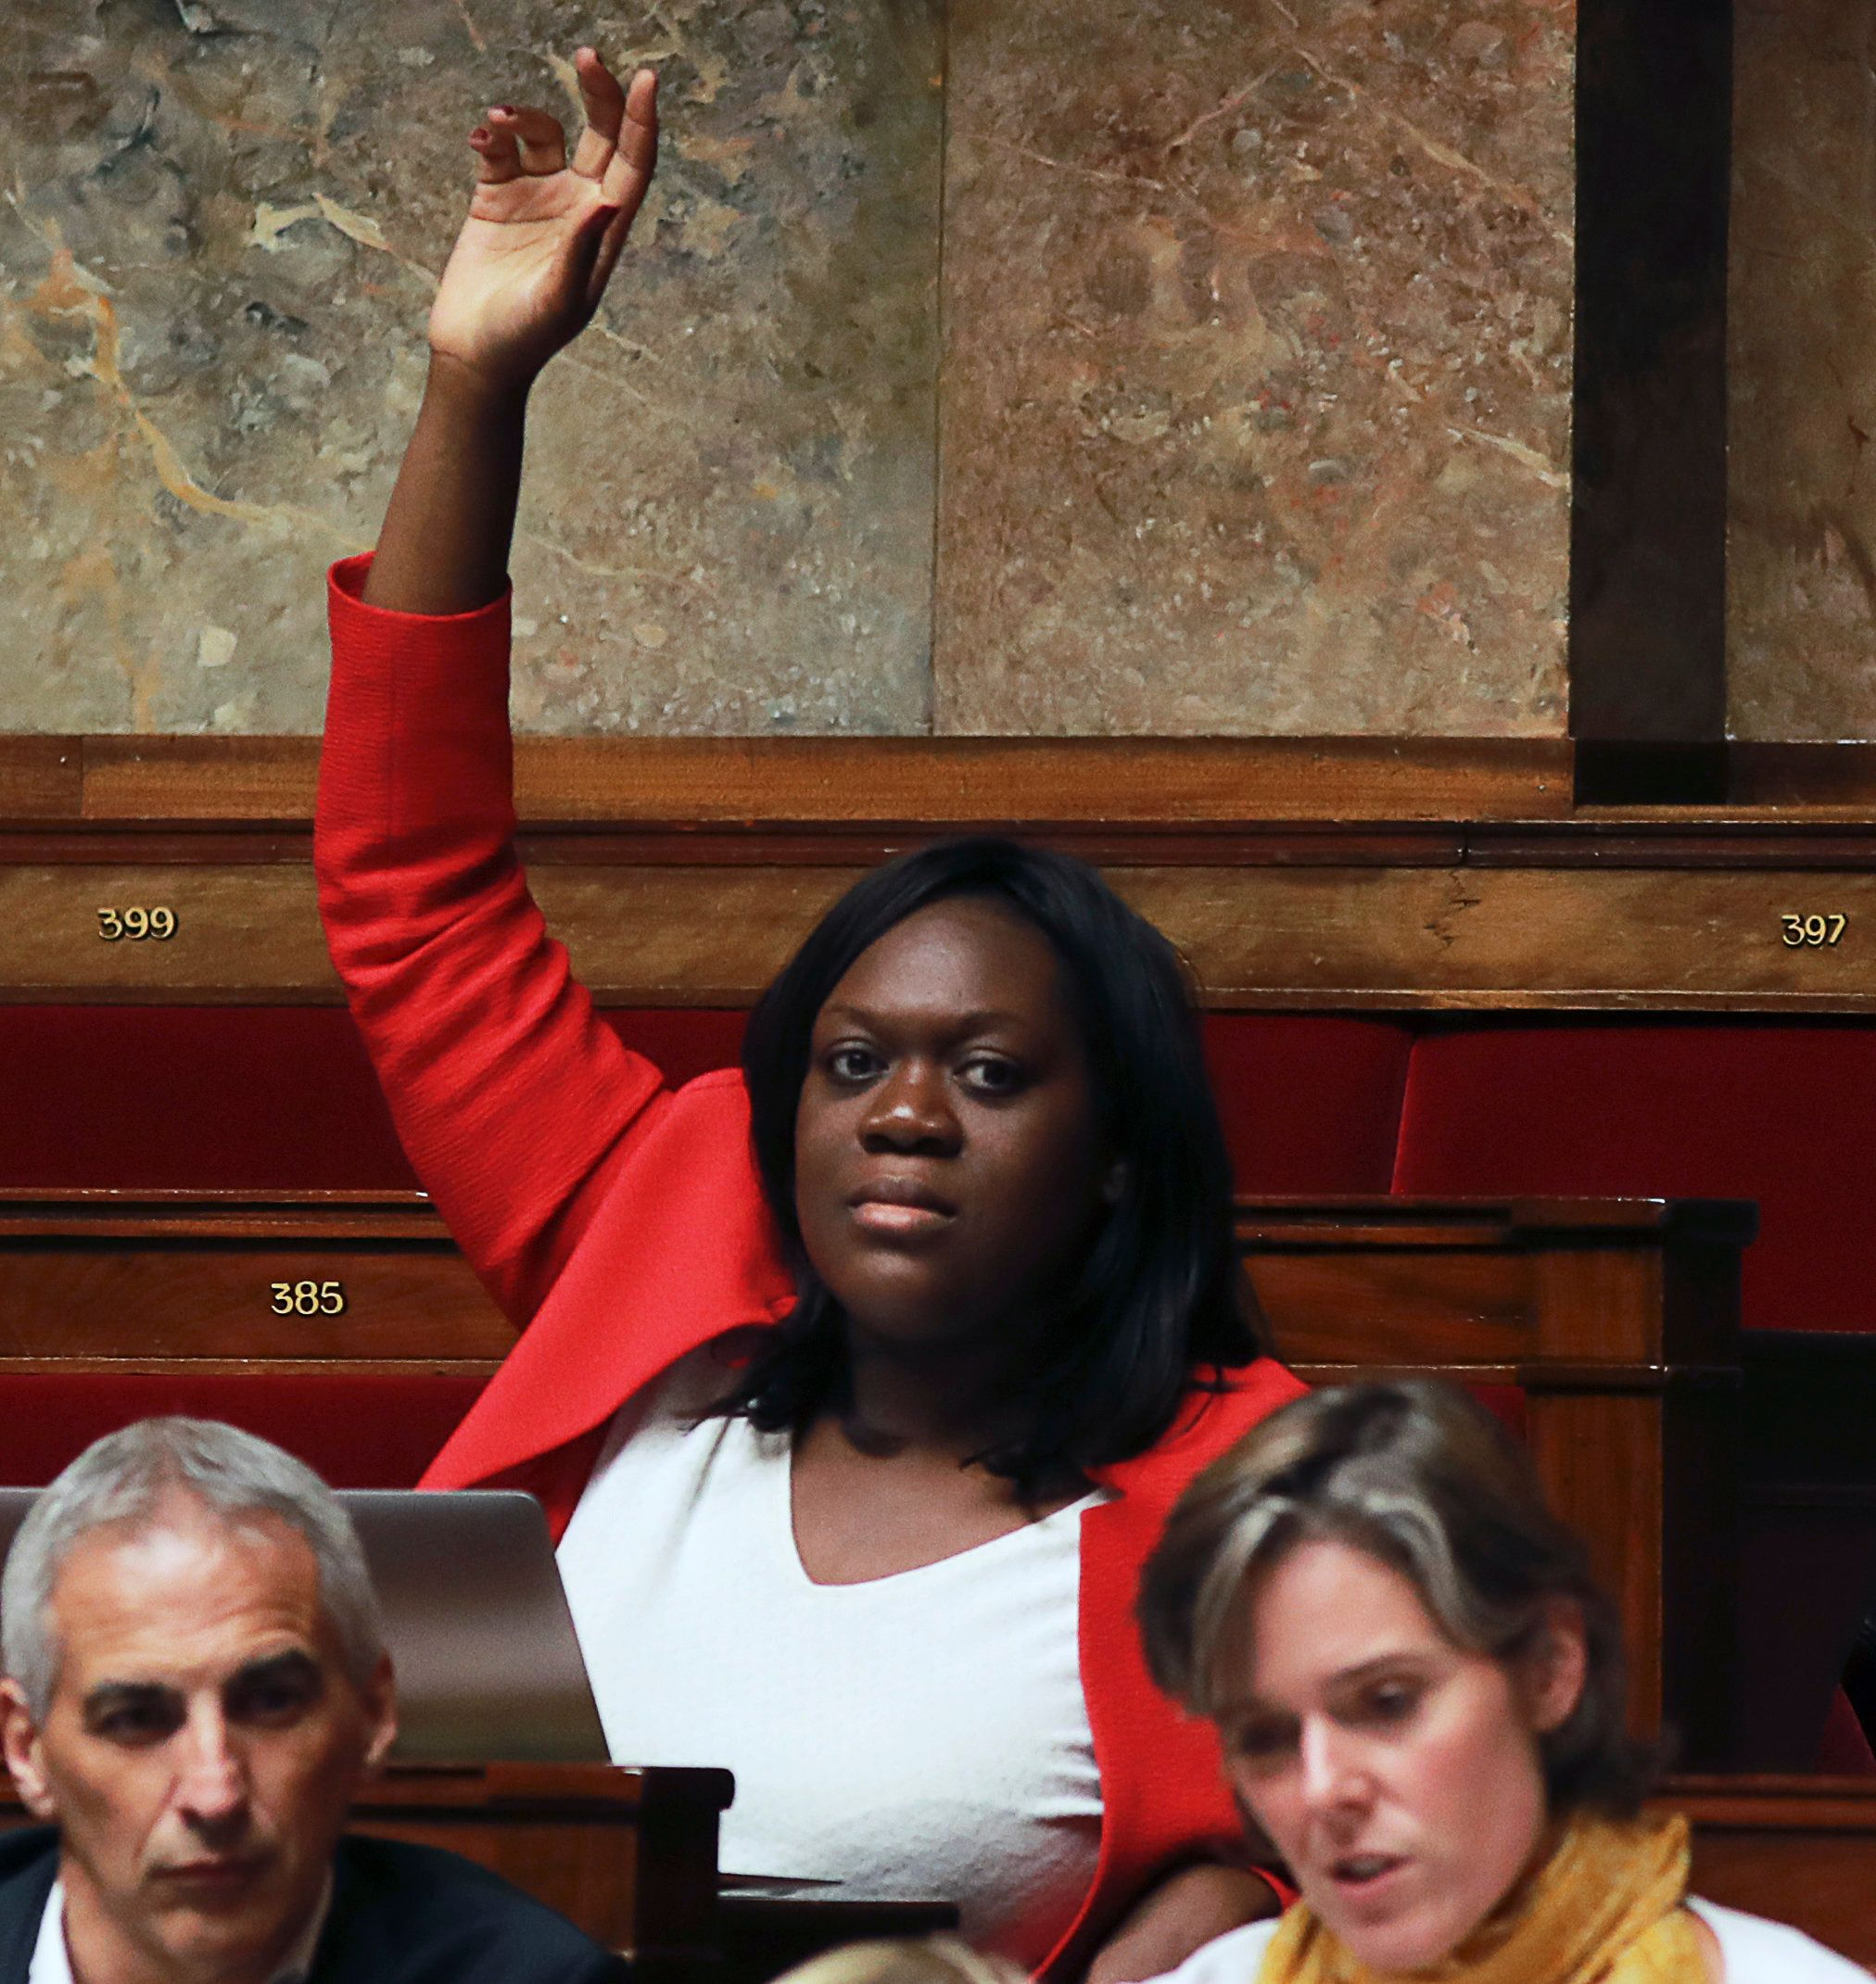 People Rally Around French Lawmaker Hit With Racist Death Threat